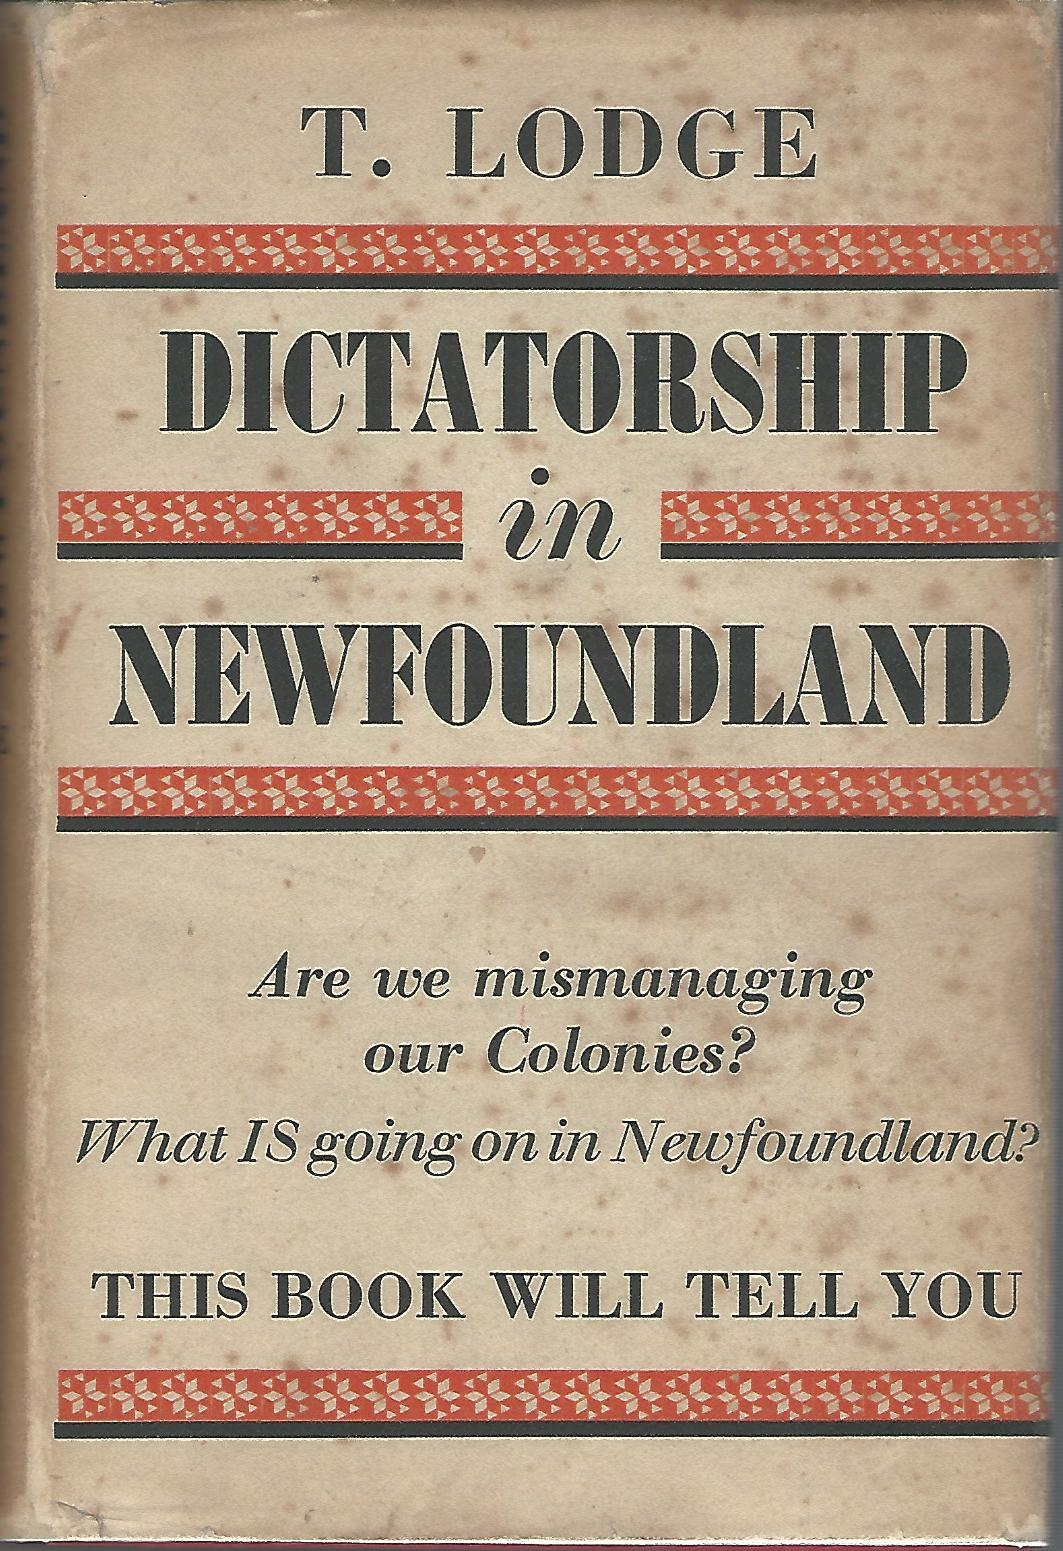 Image for Dictatorship in Newfoundland.